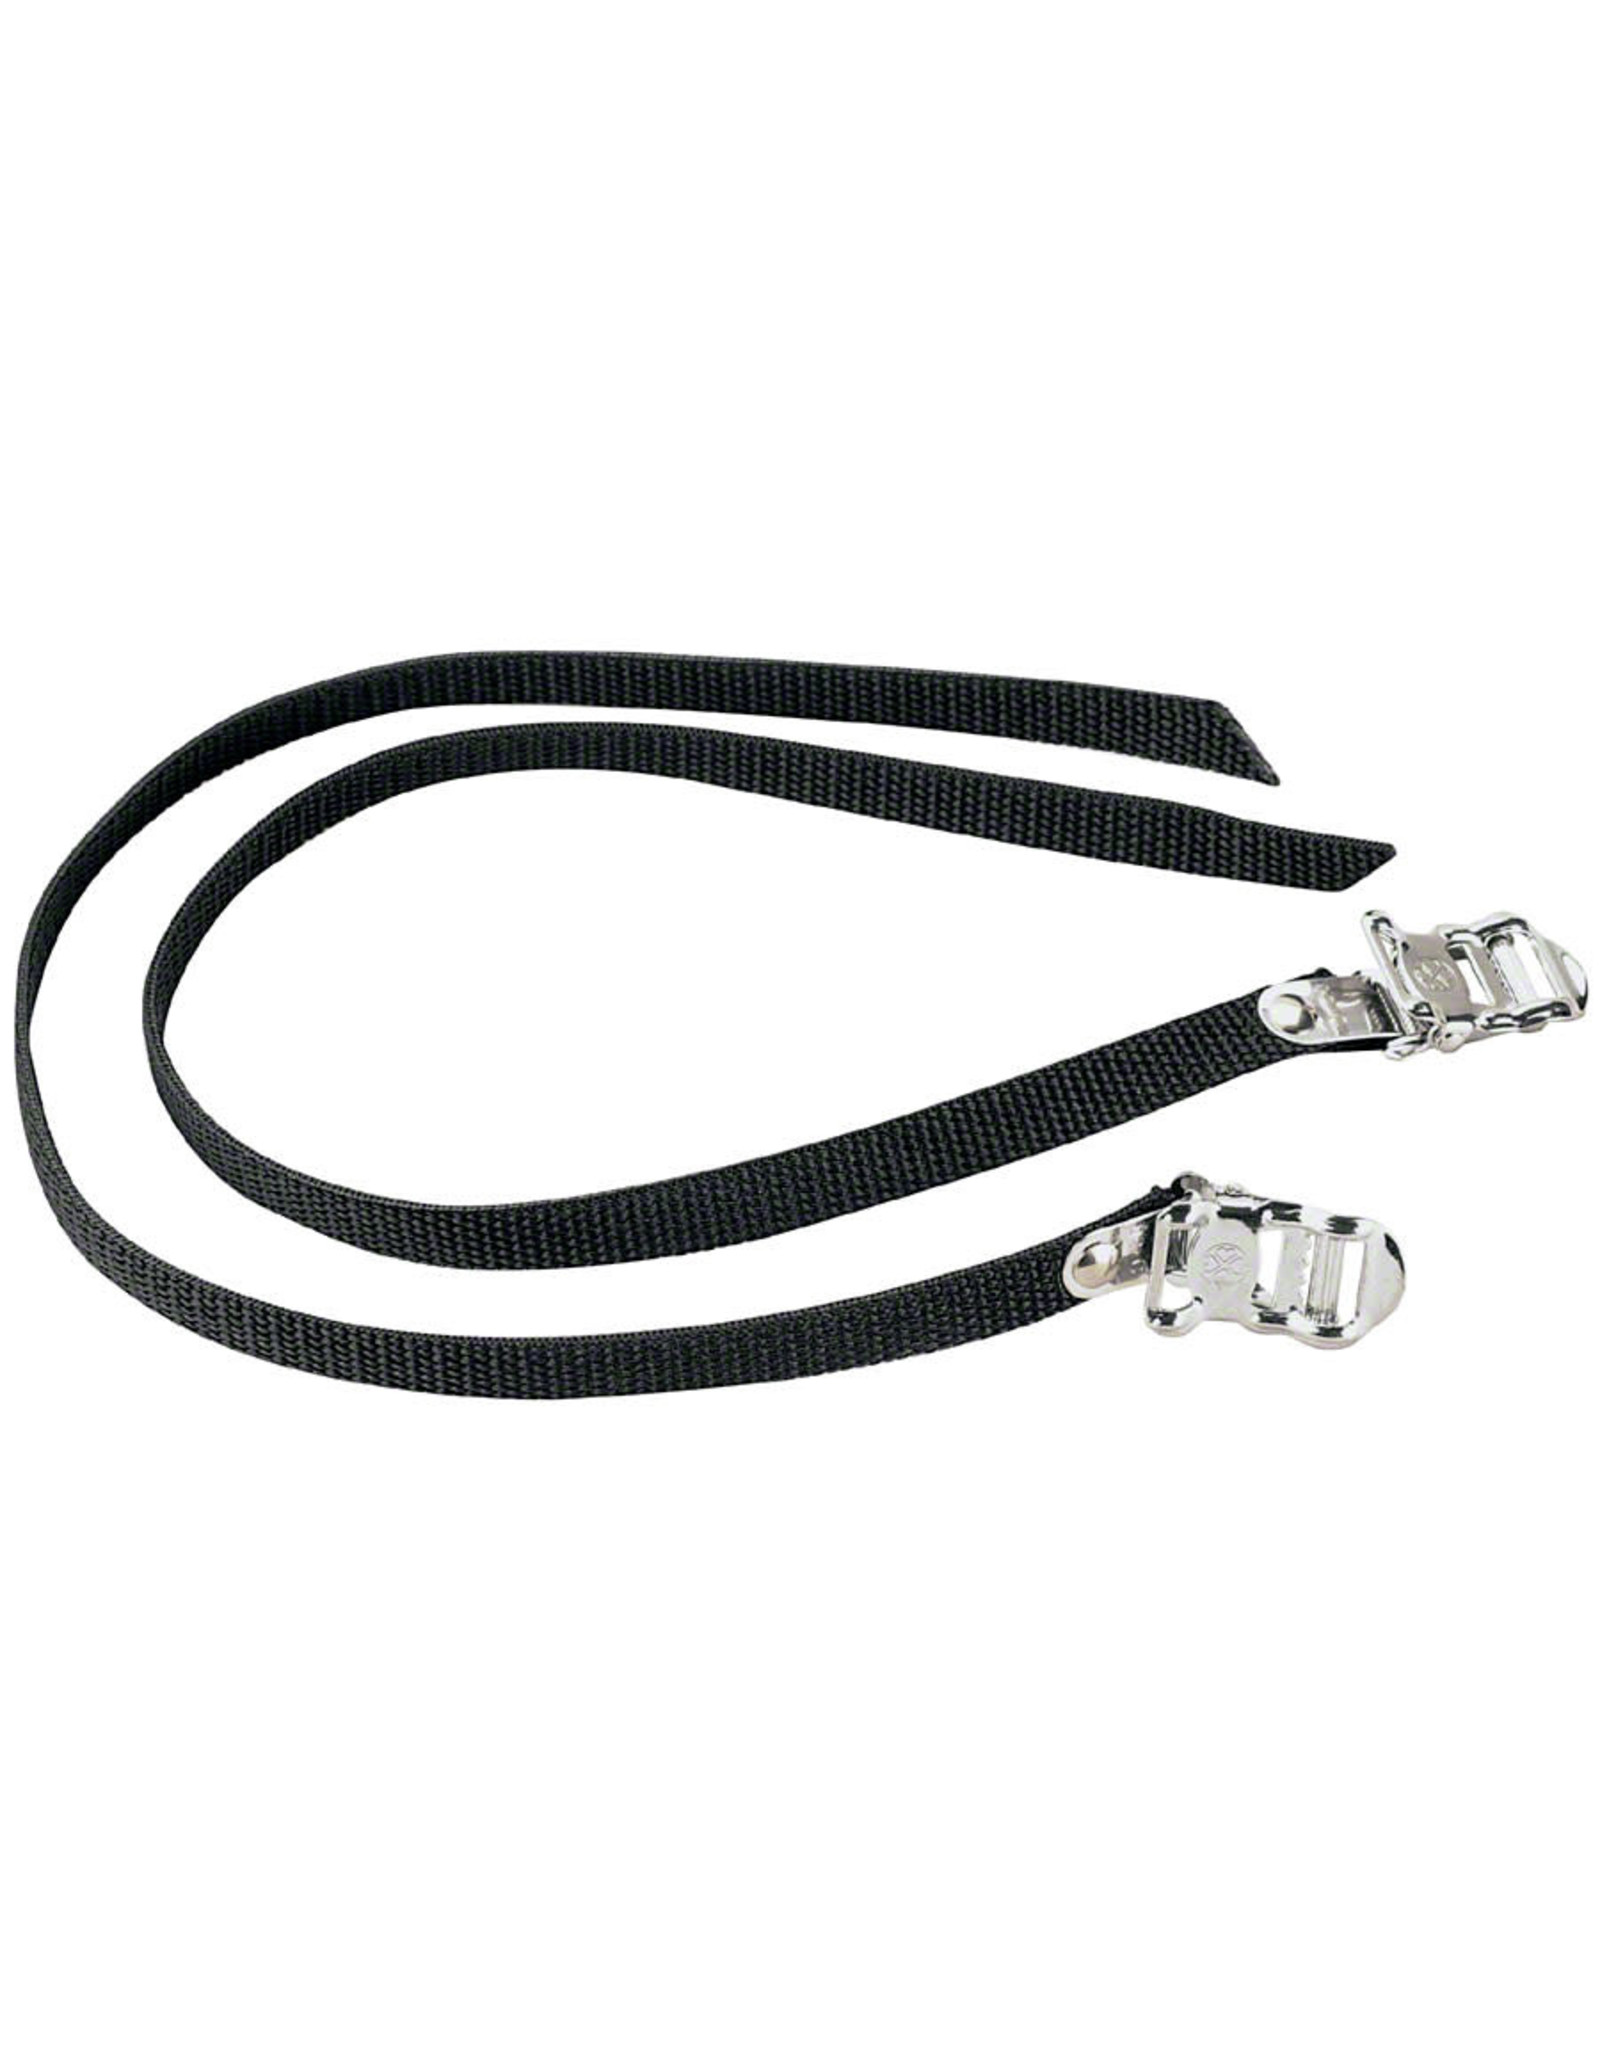 Dimension Dimension Nylon 450mm Basic Toe Strap